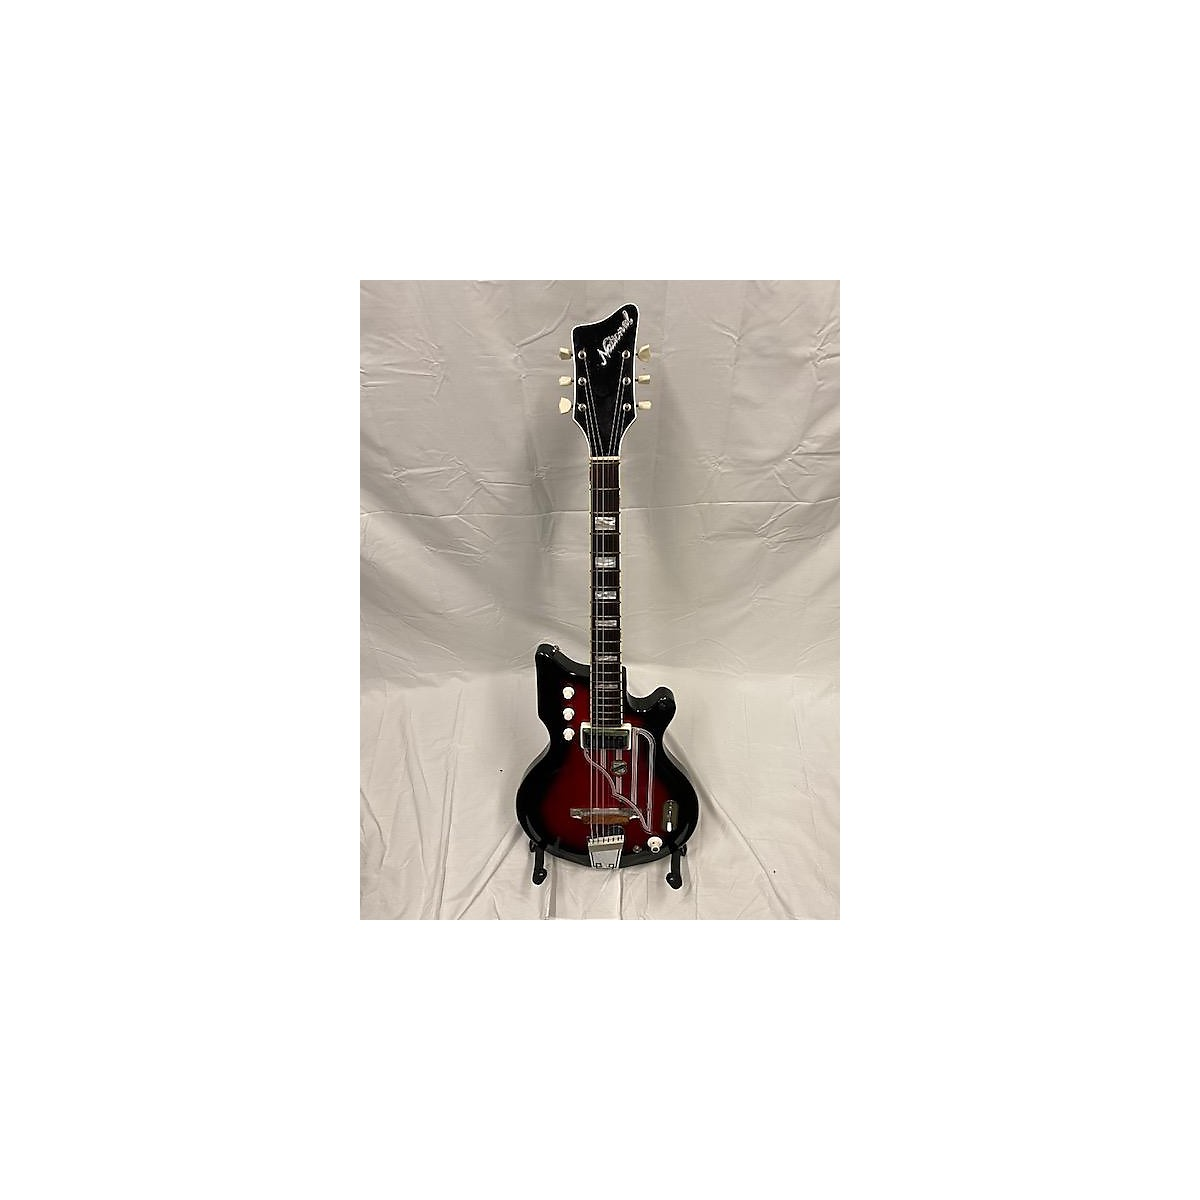 National 1962 Westwood 75 Solid Body Electric Guitar